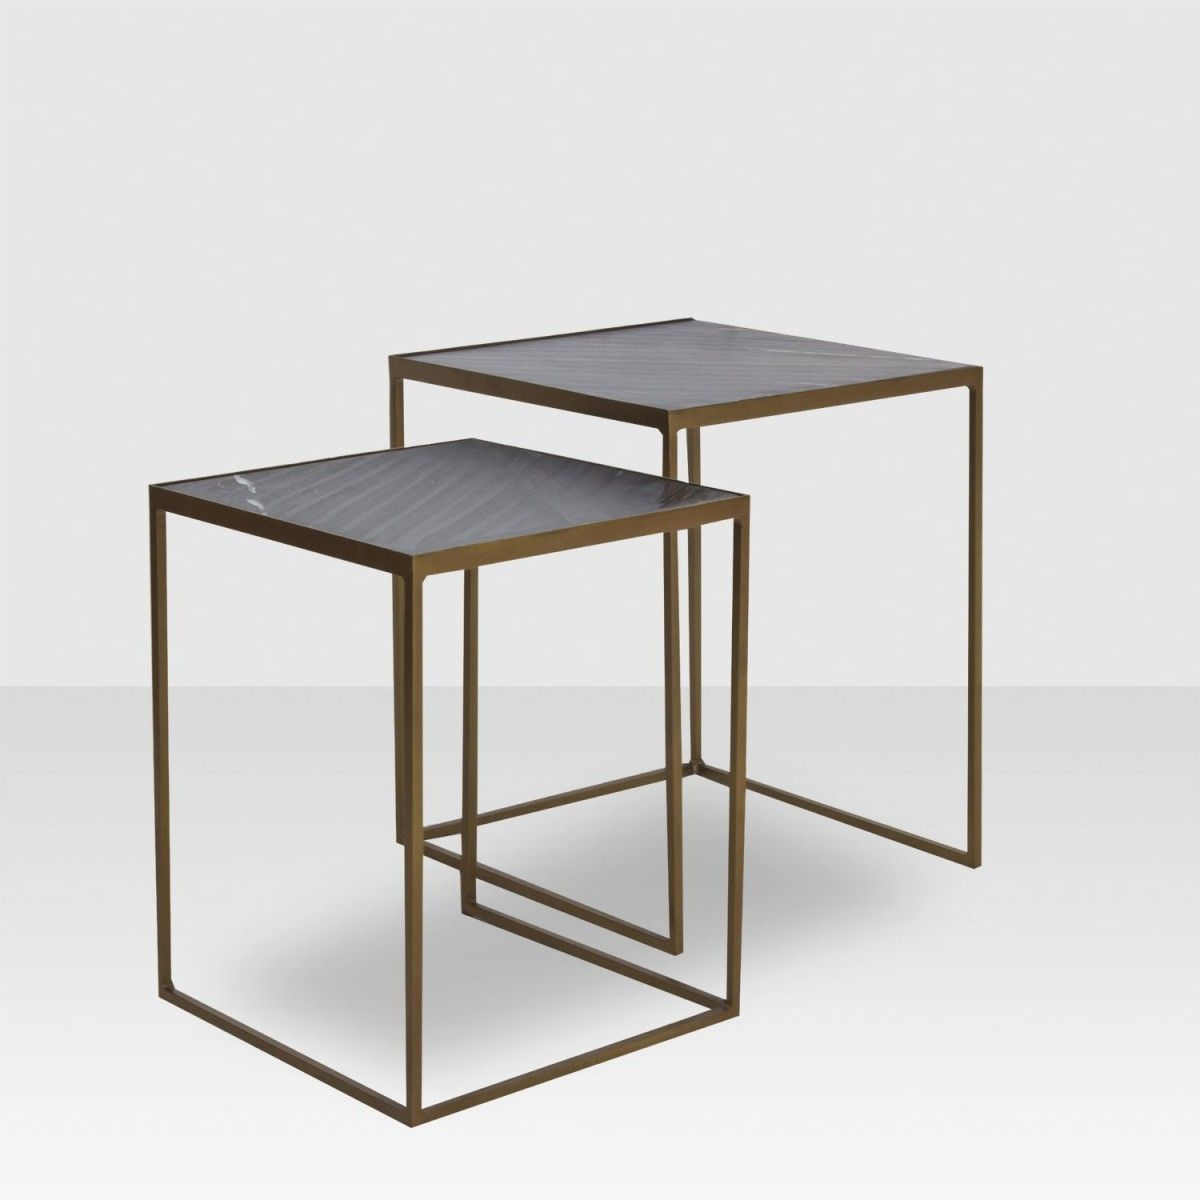 Marble Nesting Tables Black X2f Brass Elte Market Nesting Tables Table Coffee Table